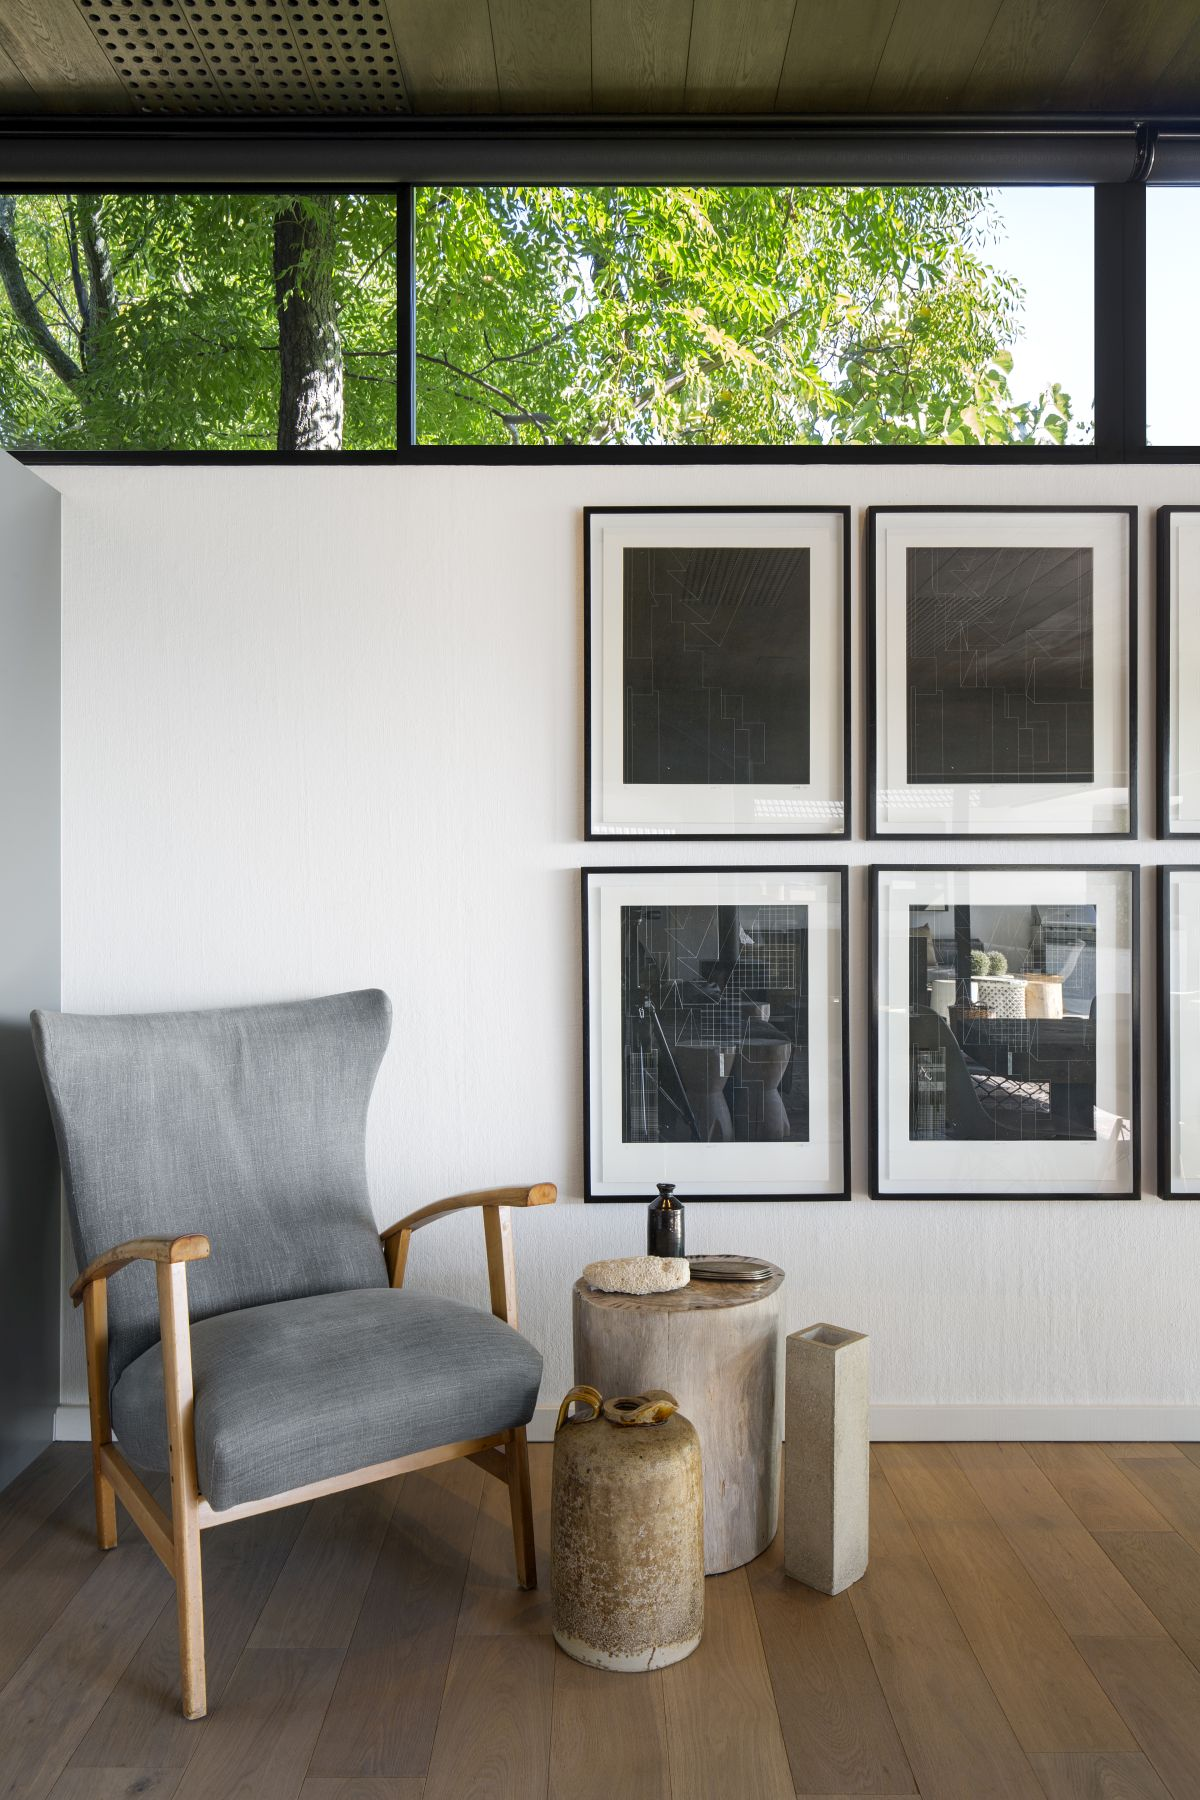 The strong architectural nature of the house was preserved and showcased on this wall